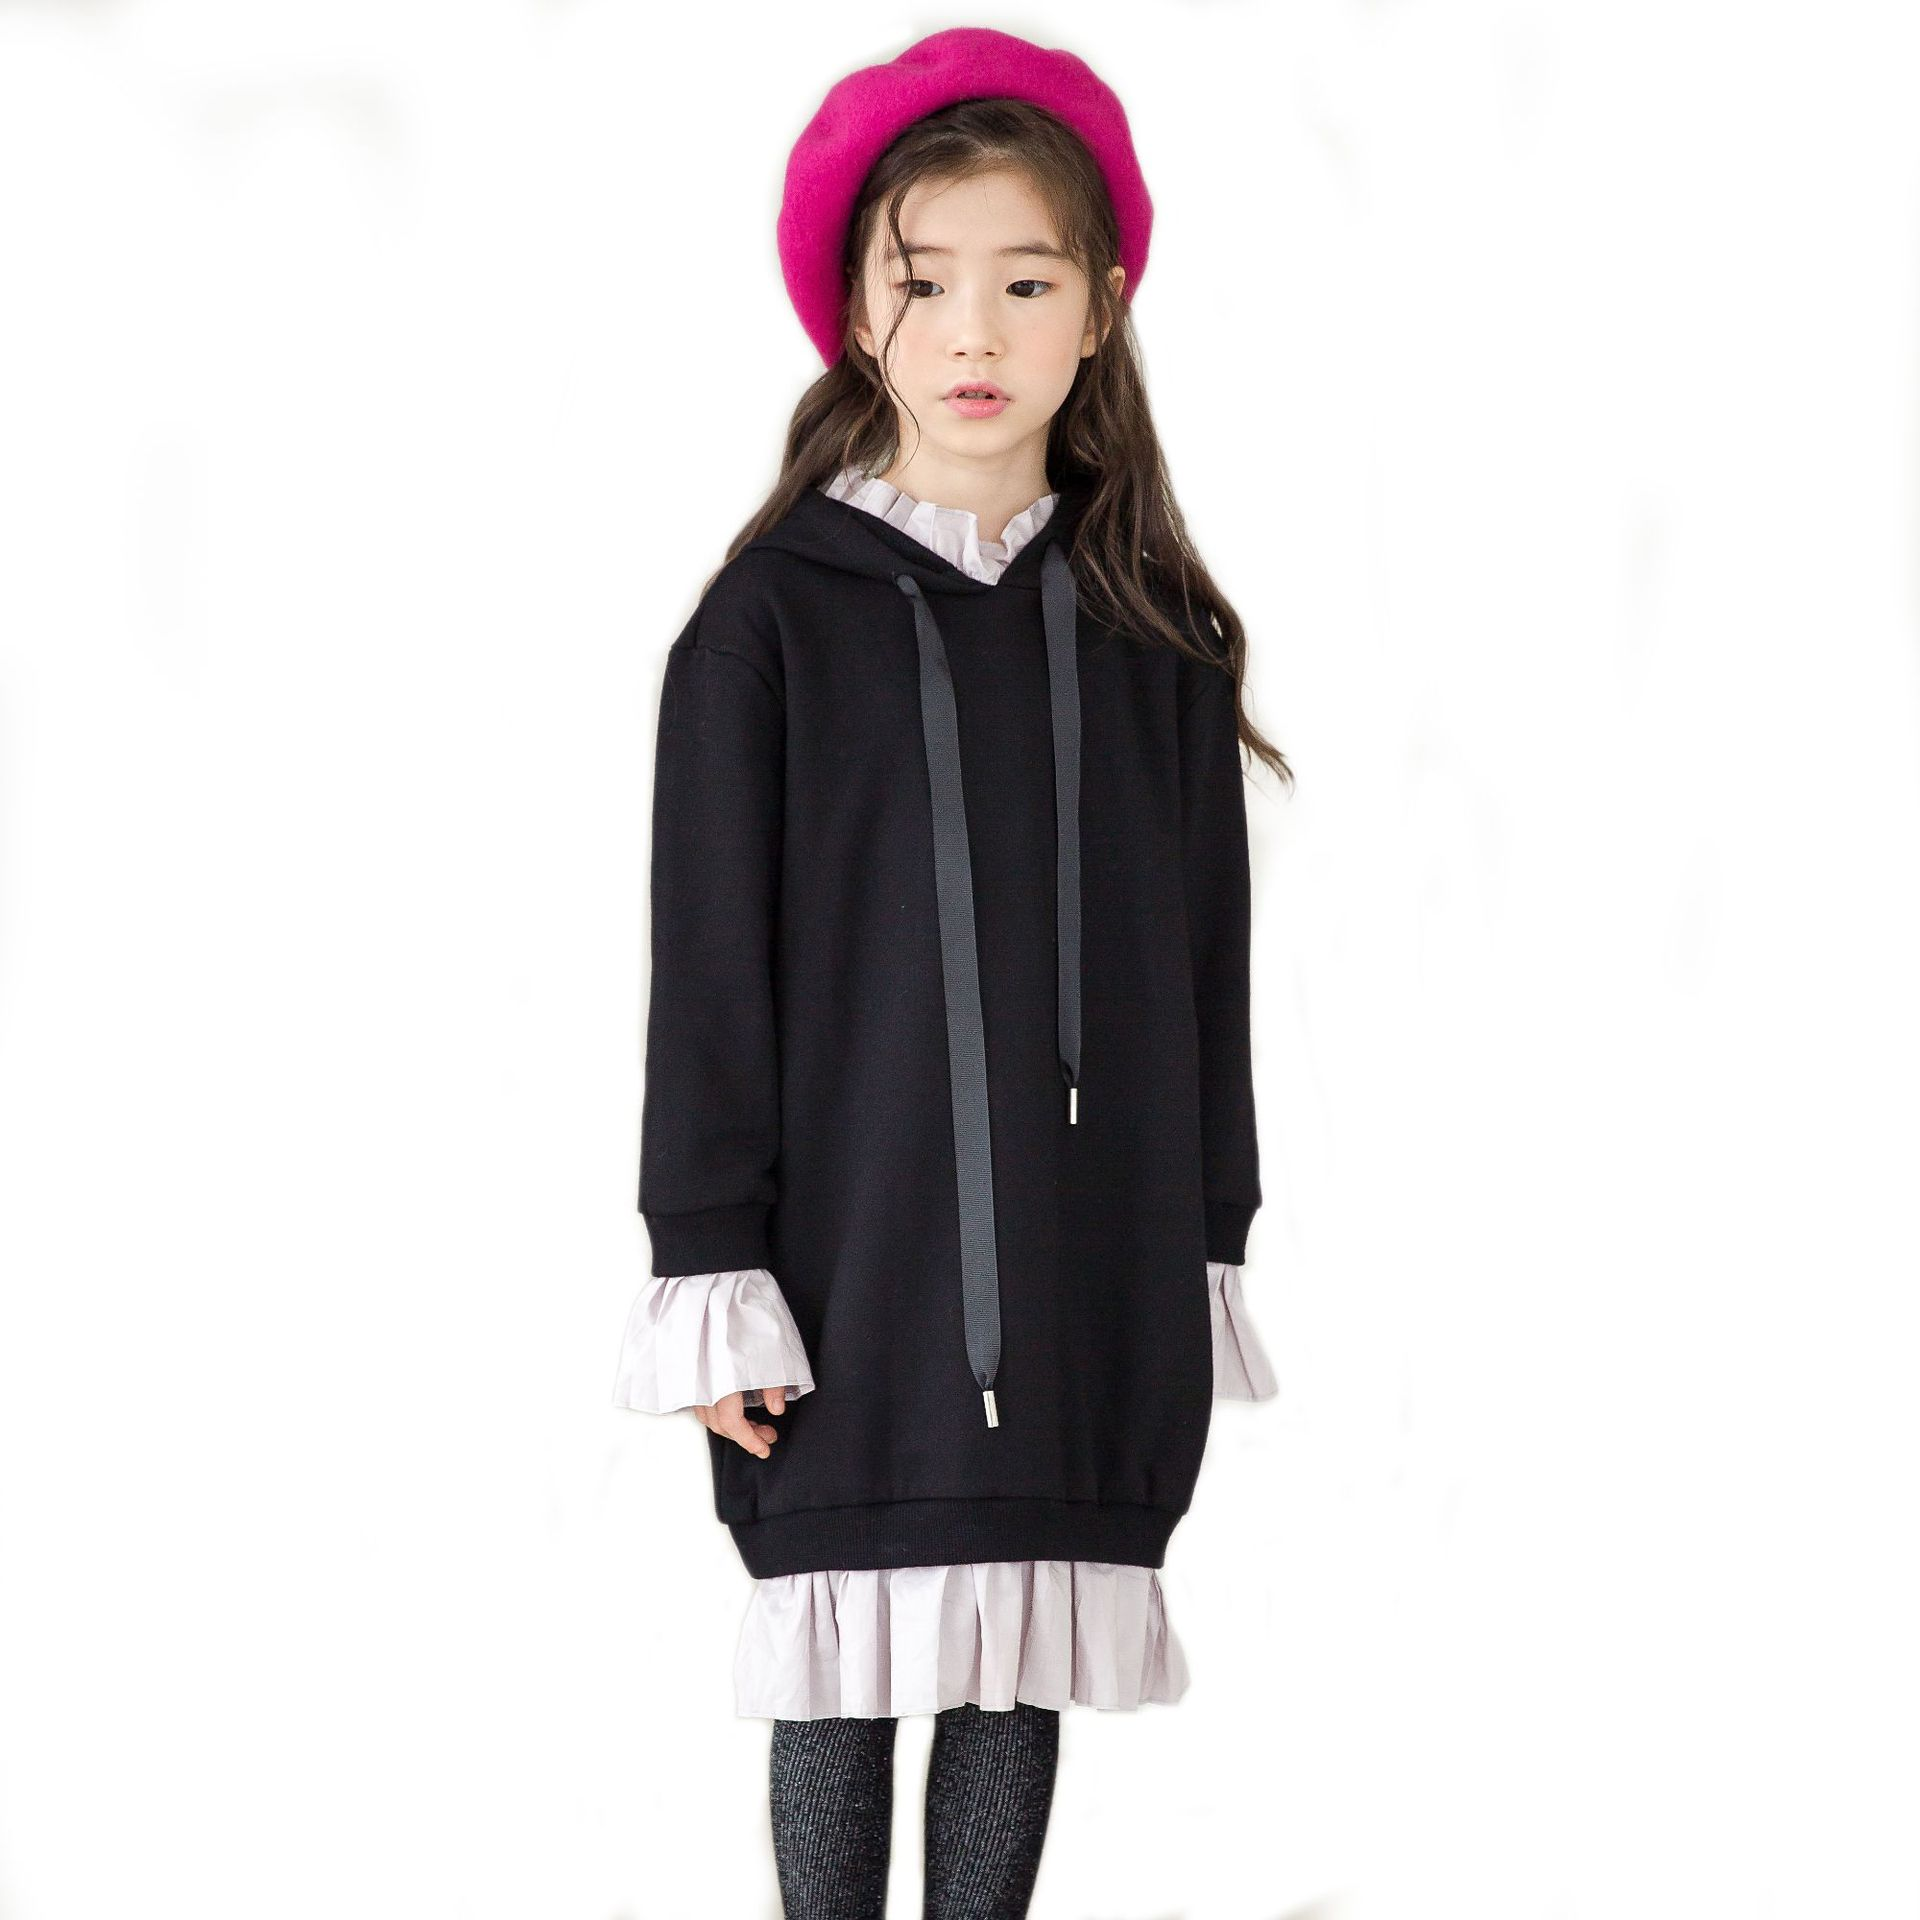 7a41c3f70 Girl Black Hoodie Dress Autumn 2018 New Teens Girls Long Sweatshirts Dresses  Kids Hooded Pullover Dress Casual Children Clothing